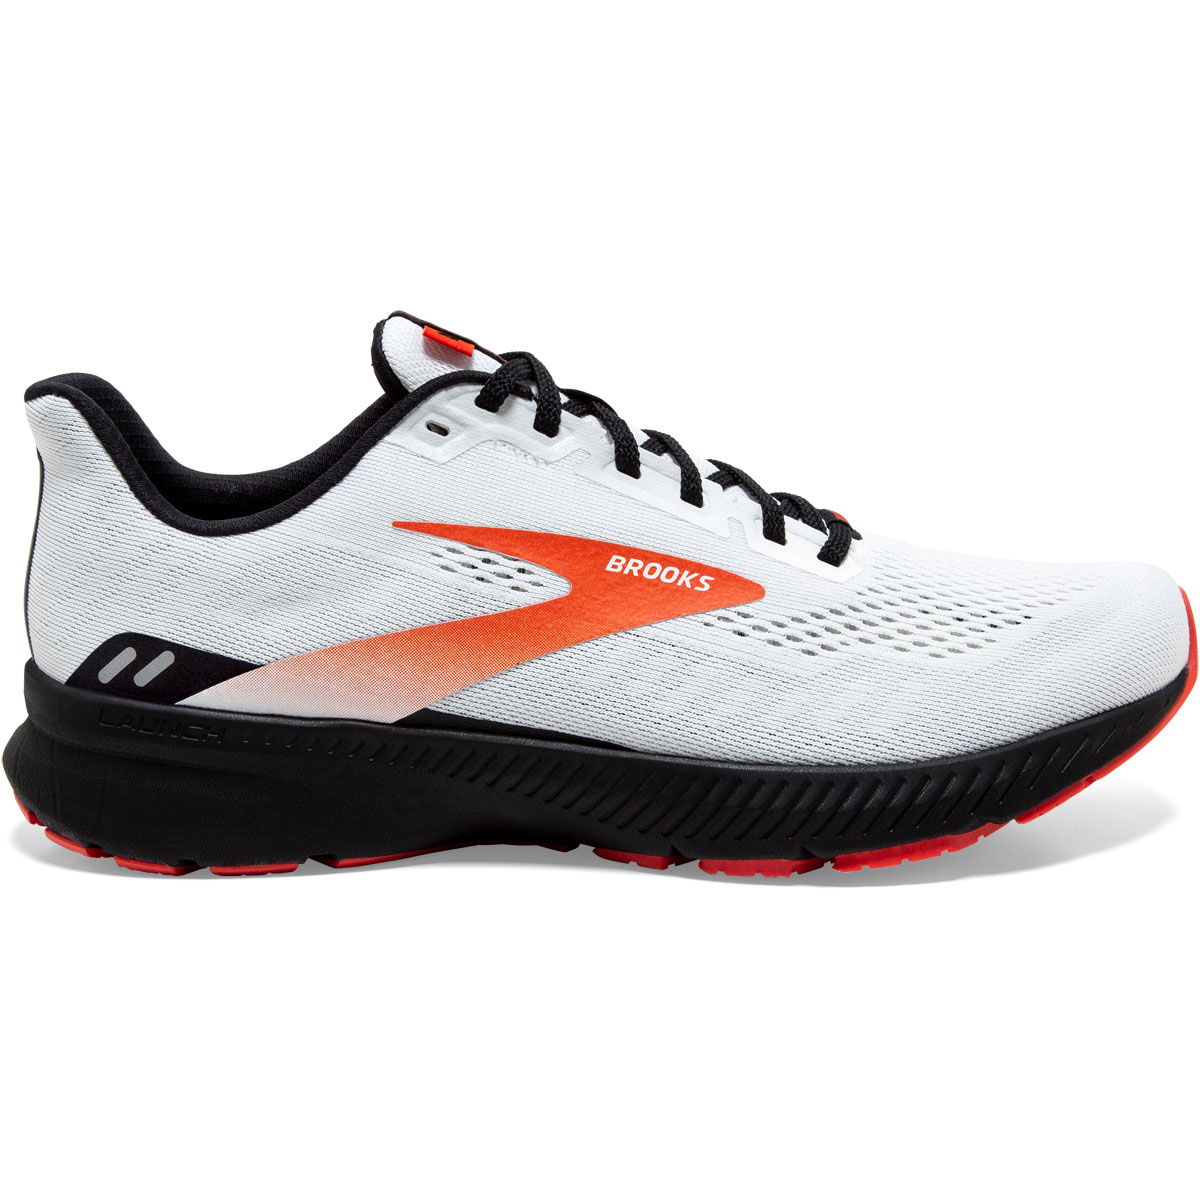 Men's Brooks Launch 8 Running Shoe - Color: White/Black/Red - Size: 7 - Width: Regular, White/Black/Red, large, image 1